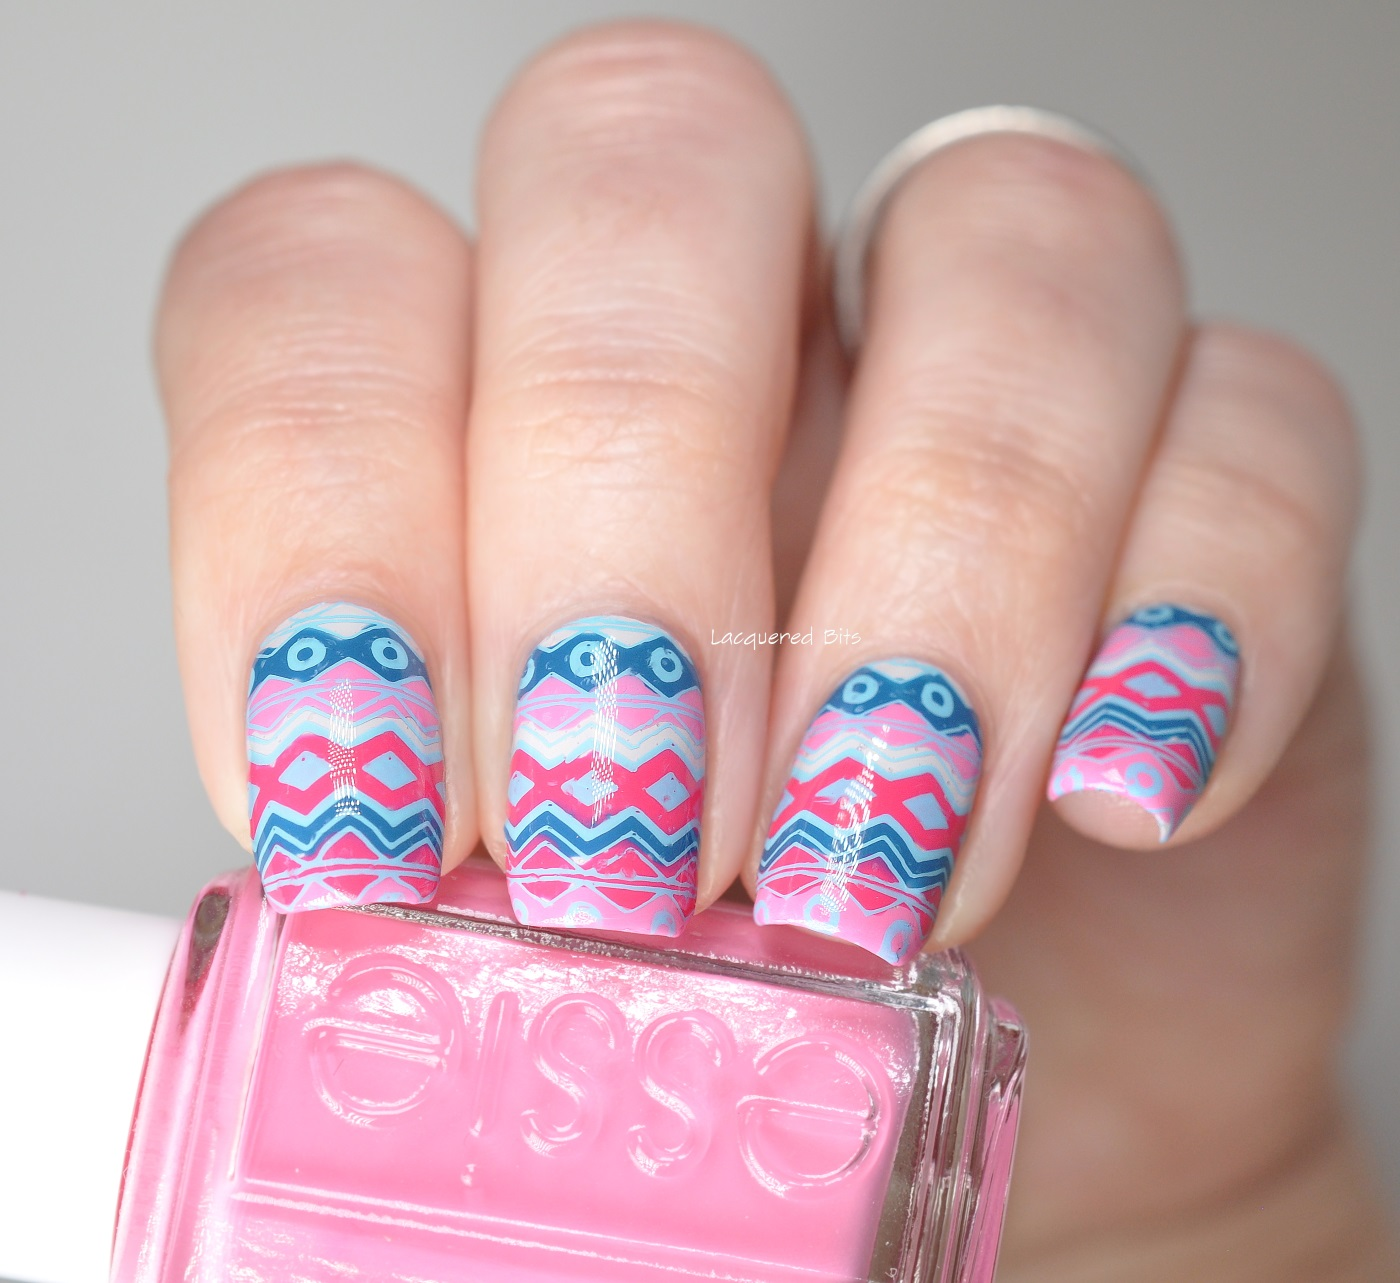 Blue and Pink Tribal Nails made with reverse stamping